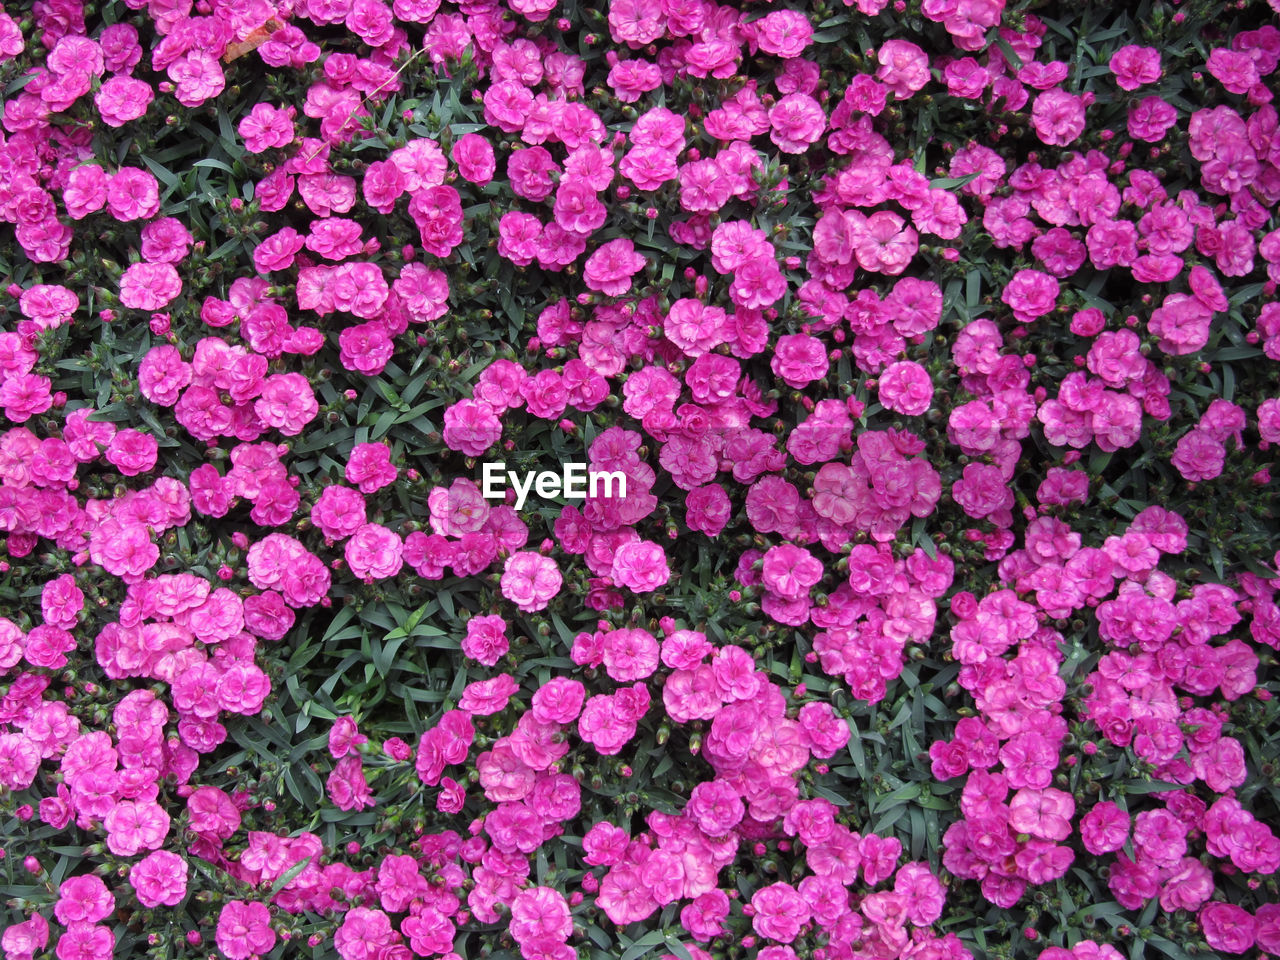 flower, flowering plant, pink color, plant, full frame, backgrounds, vulnerability, fragility, petal, beauty in nature, freshness, nature, close-up, no people, flower head, inflorescence, growth, day, outdoors, springtime, flowerbed, gardening, floral pattern